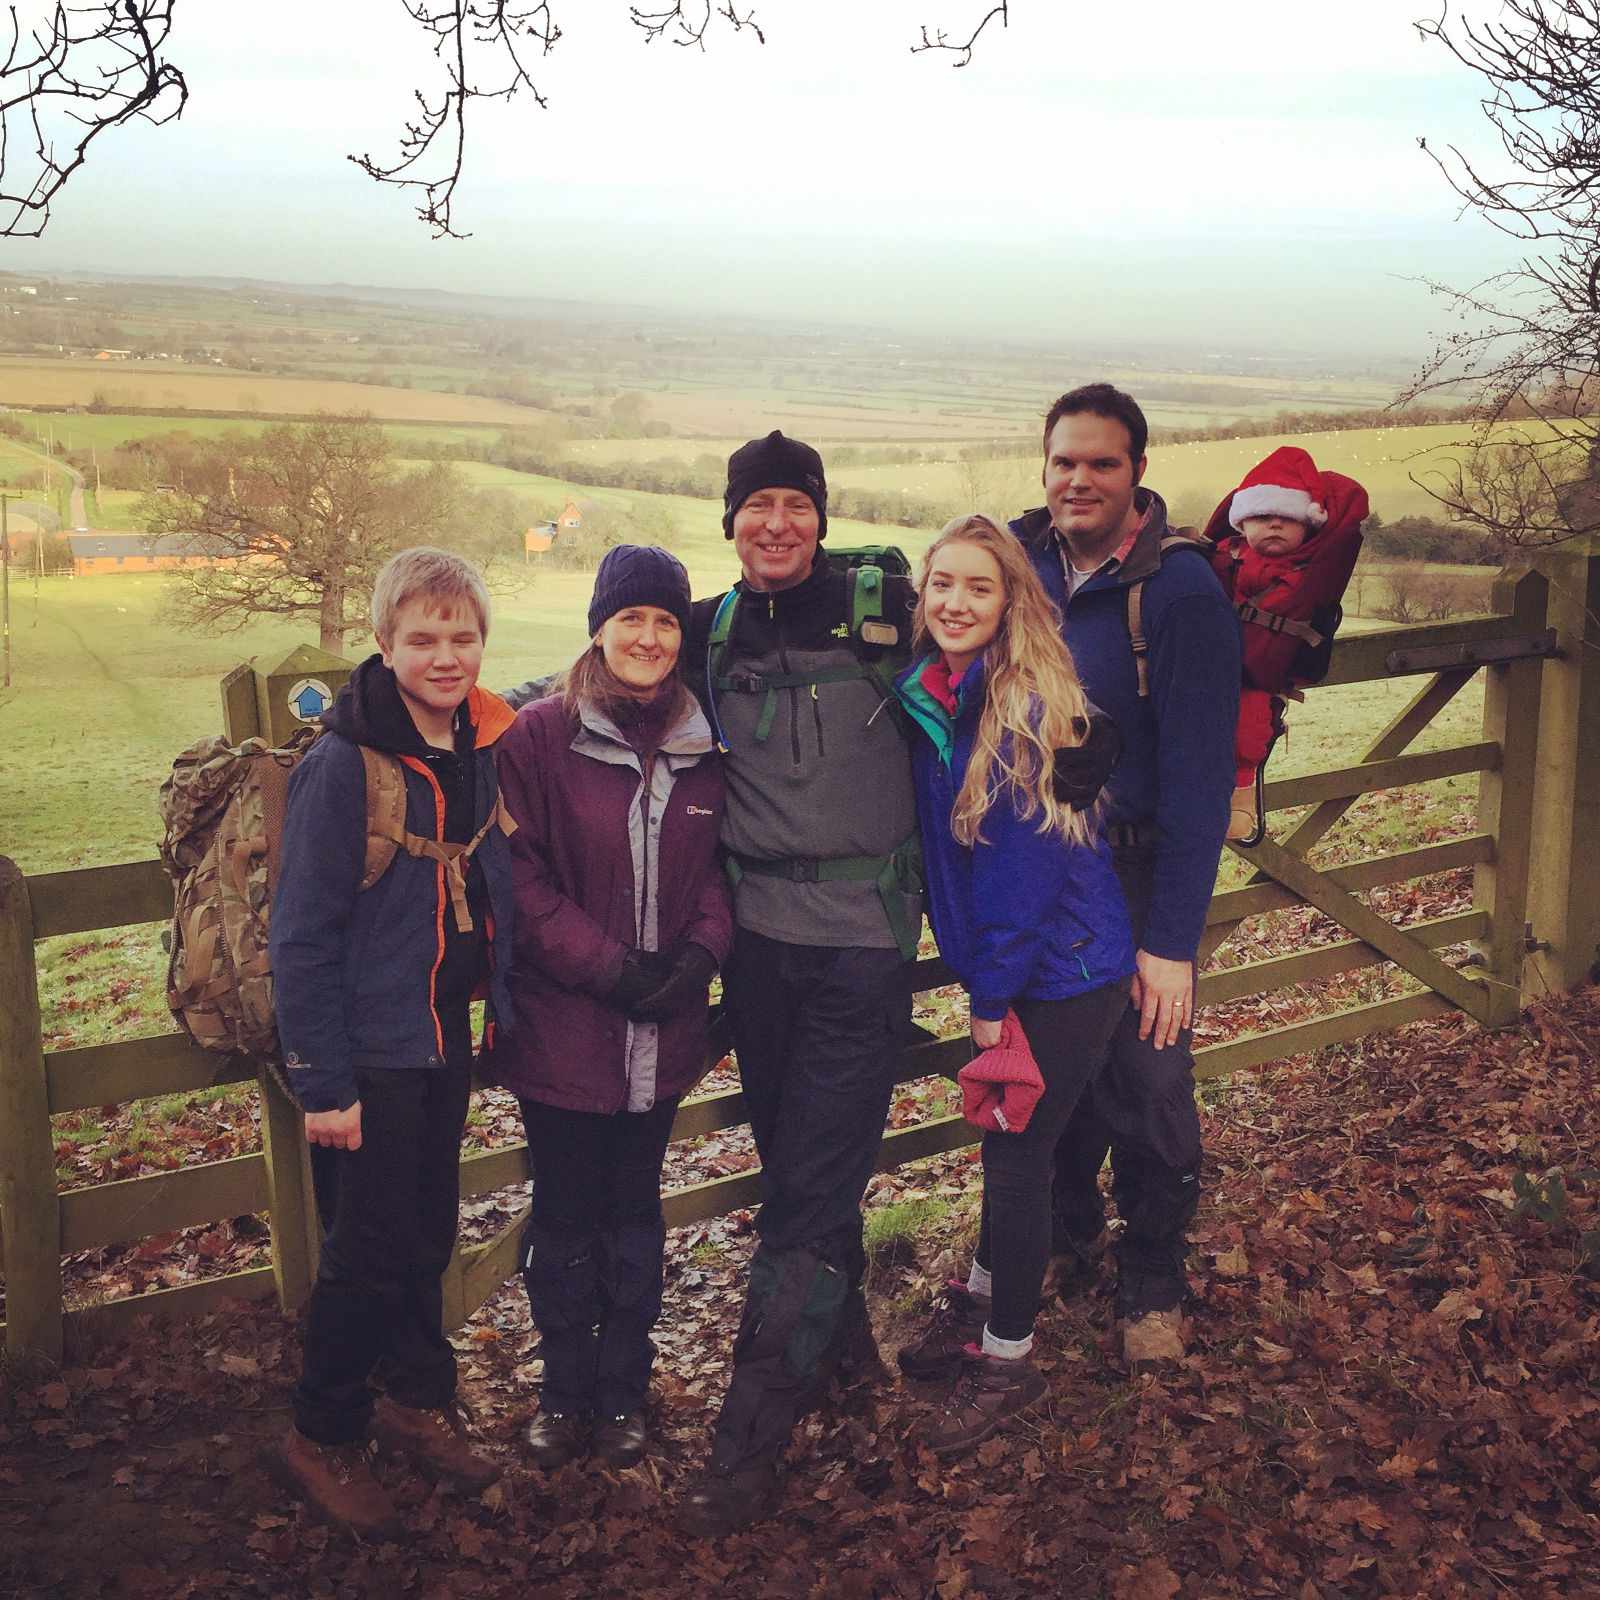 Dumbleton Hill with Allie, Heather, James, Rob and wee Archie too!